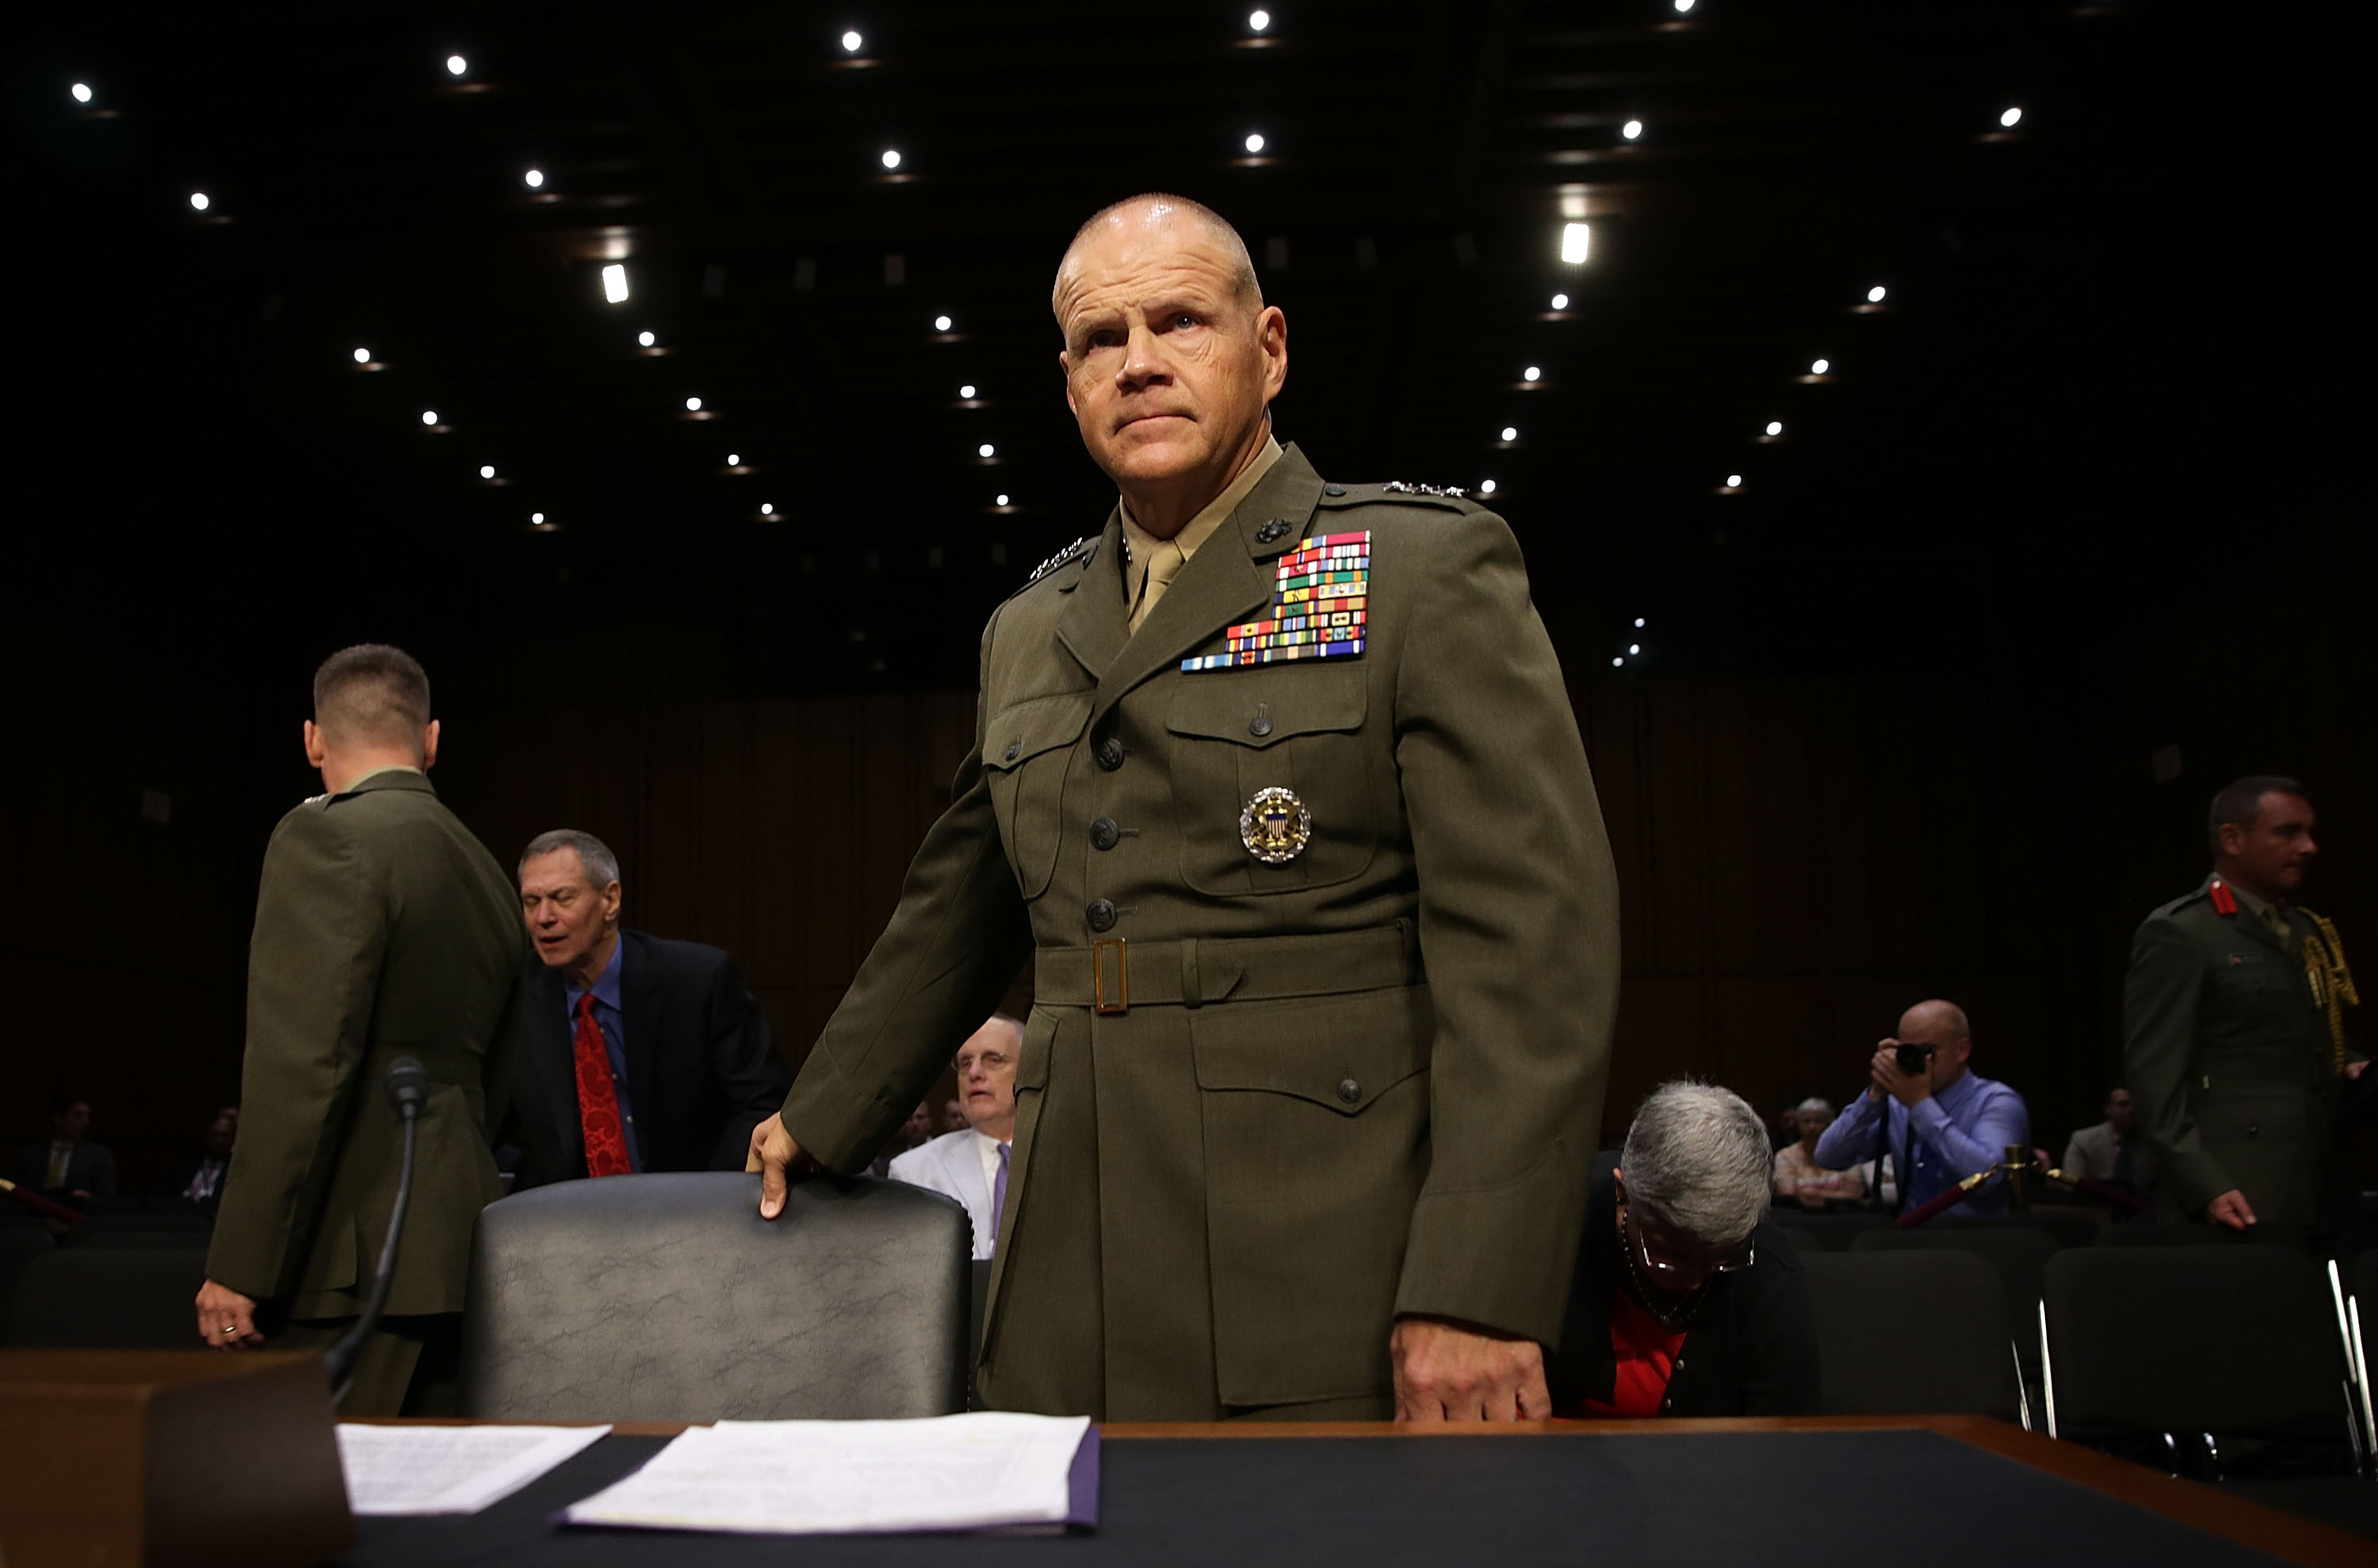 Lt. Gen. Robert Neller takes his seat during his confirmation hearing before the Senate Armed Services Committee on July 23, 2015 on Capitol Hill in Washington, D.C.